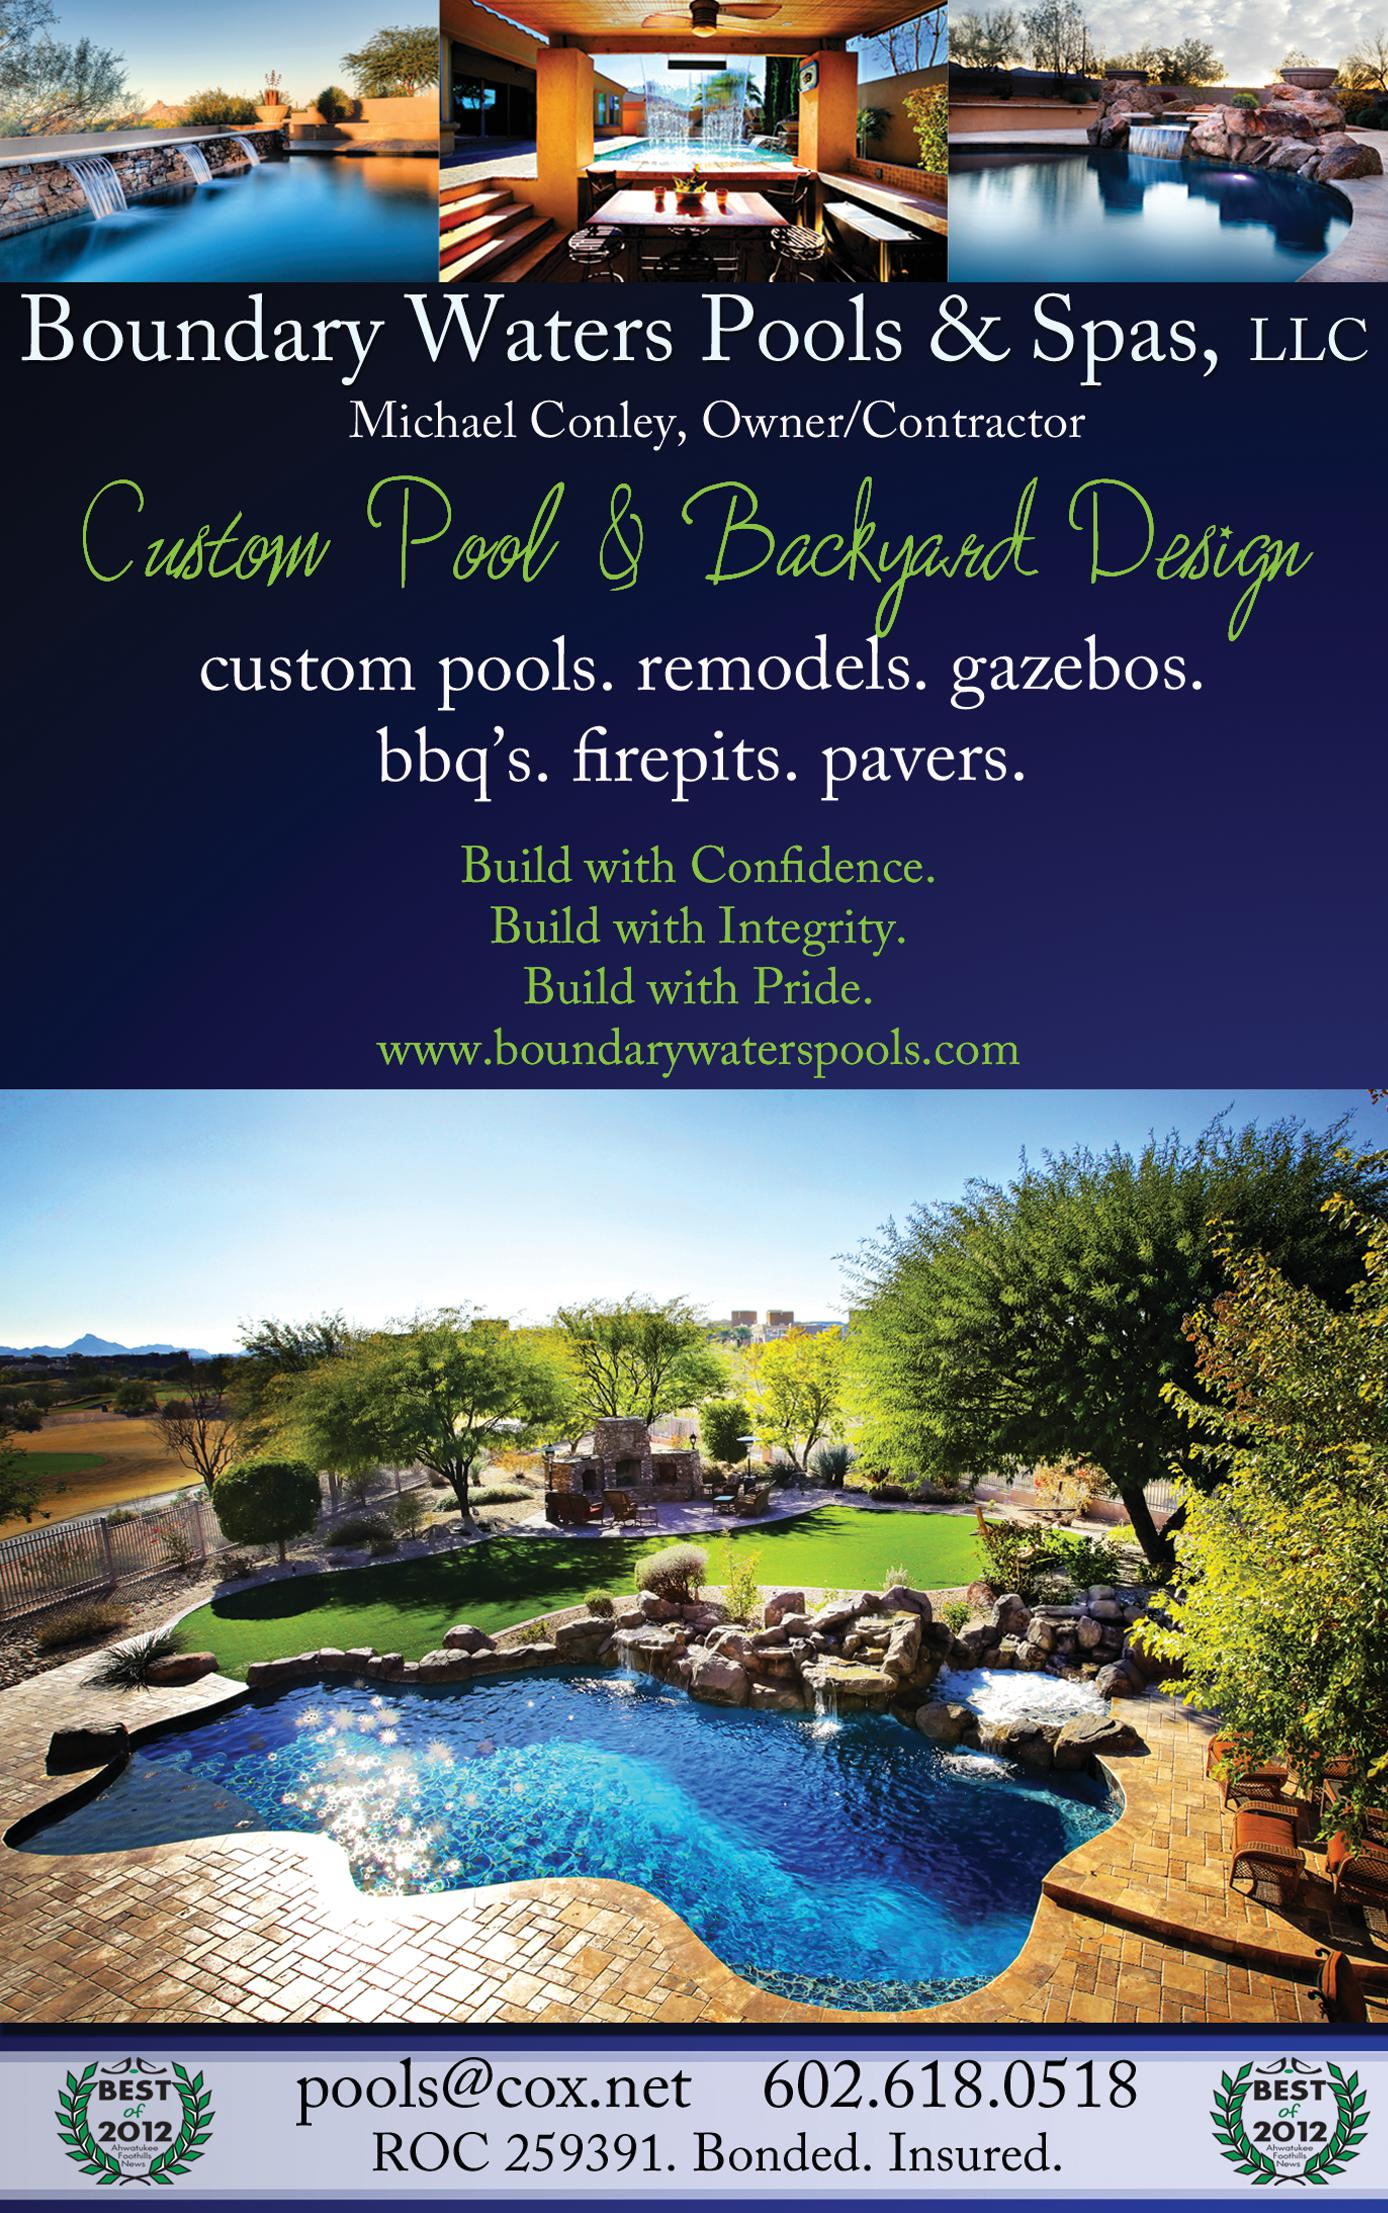 Boundary Waters Pools and Spas, LLC